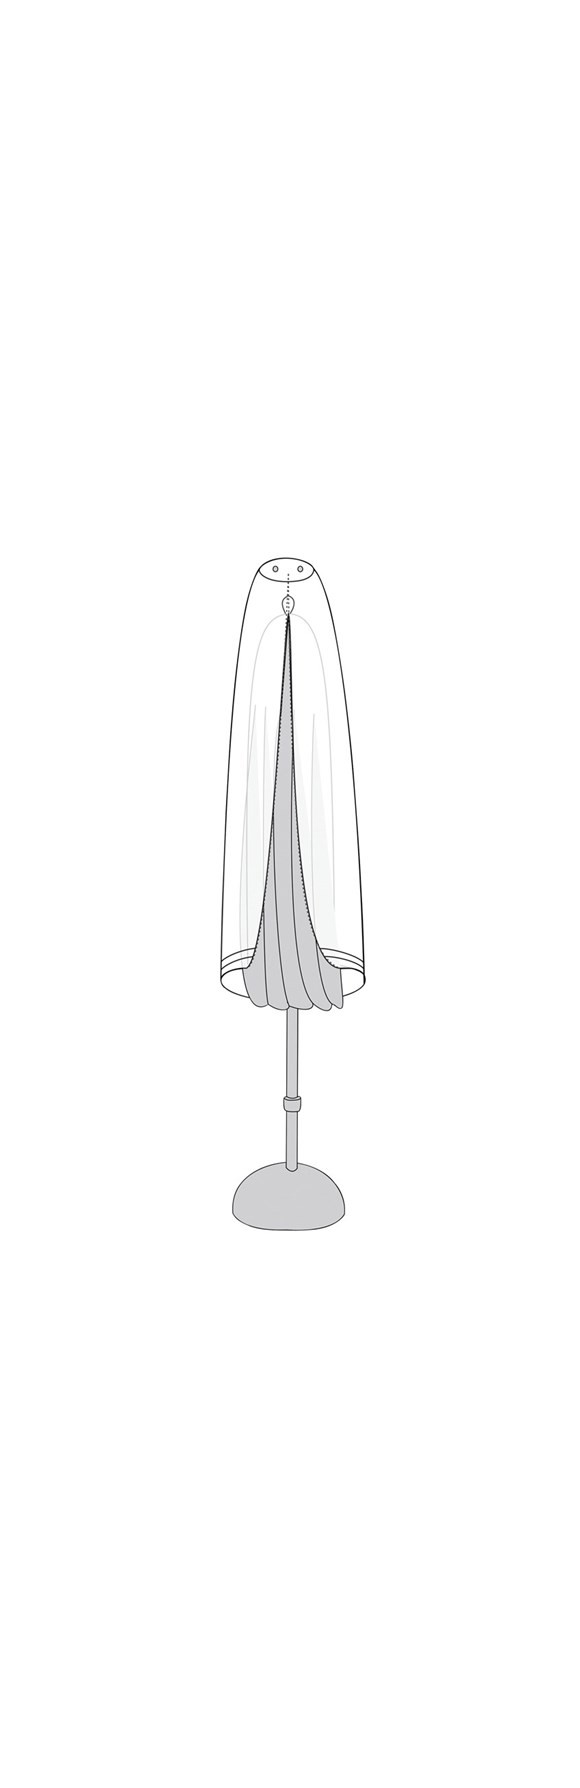 Living Outdoor - Cover For Parasol 145 cm - Grey (47449)